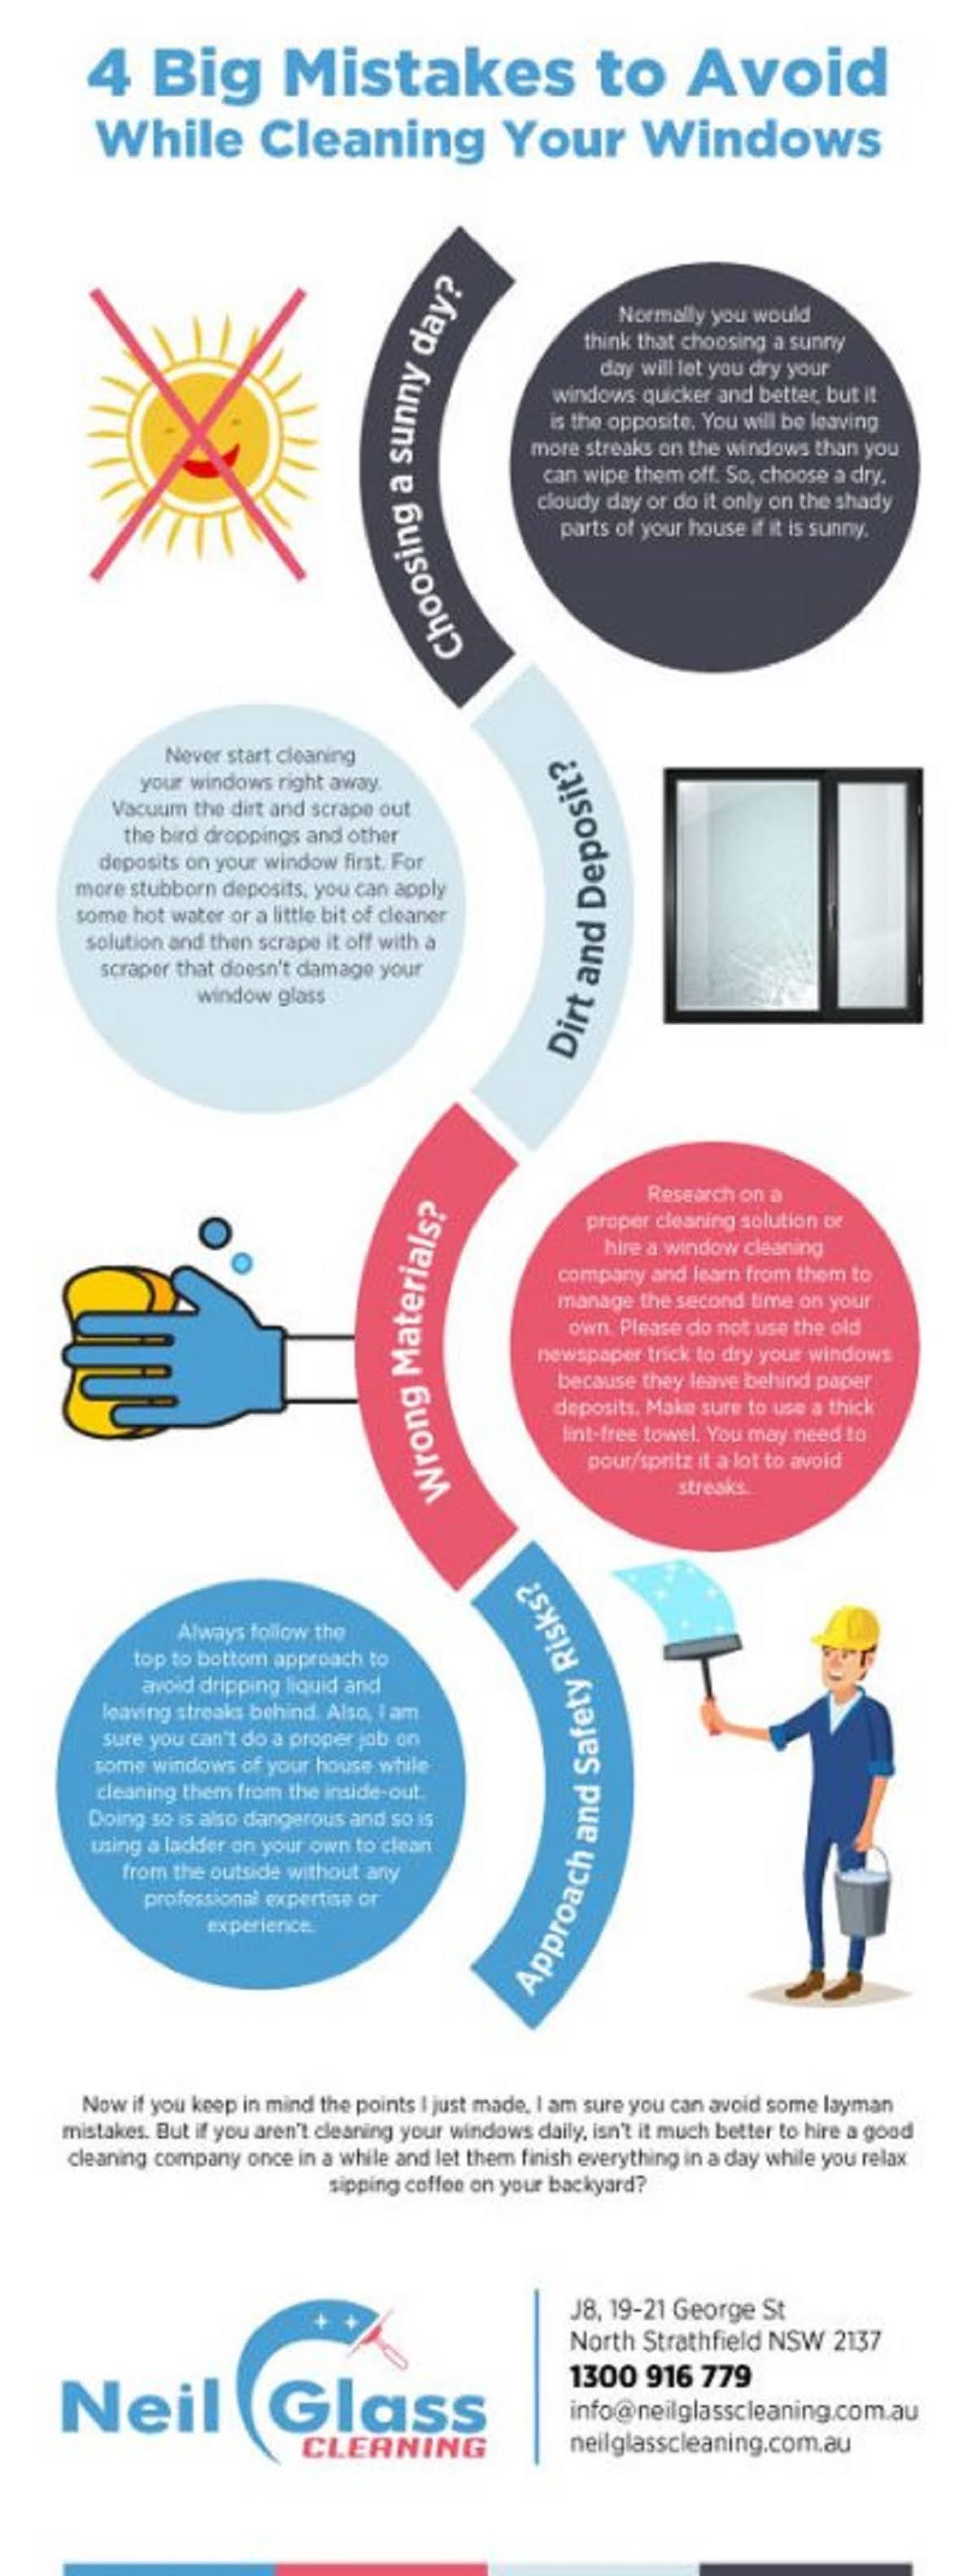 4-big-mistakes-to-avoid-while-cleaning-your-windows-infographic